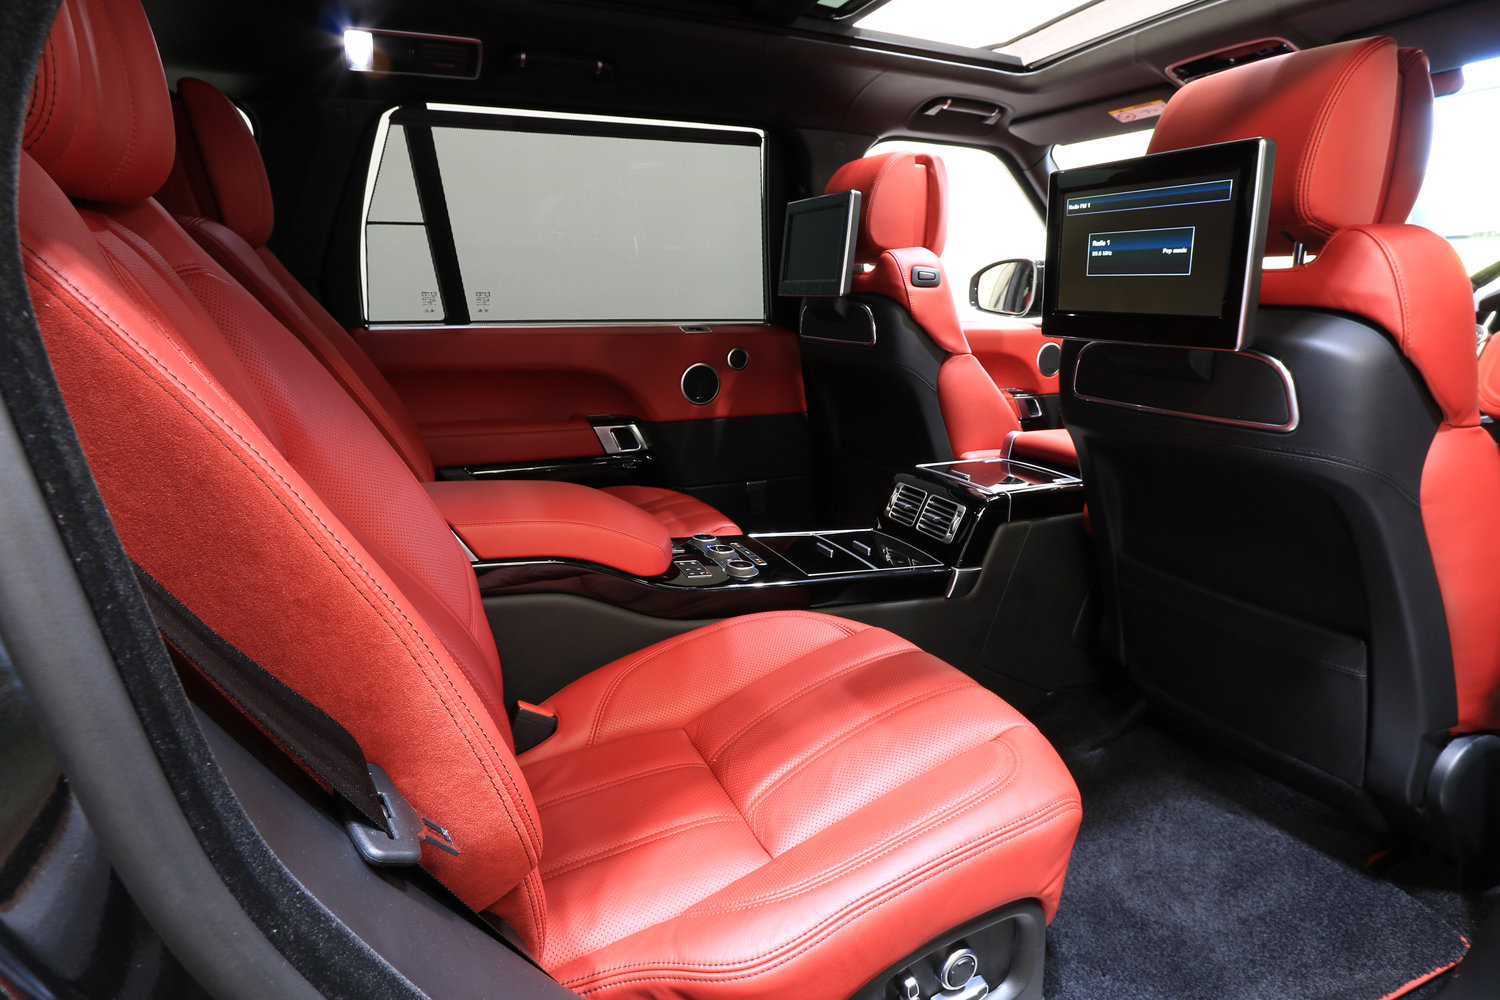 2016 16 RANGE ROVER 4.4 SDV8 AUTOBIOGRAPHY OVERFINCH LWB  For Sale (picture 6 of 6)